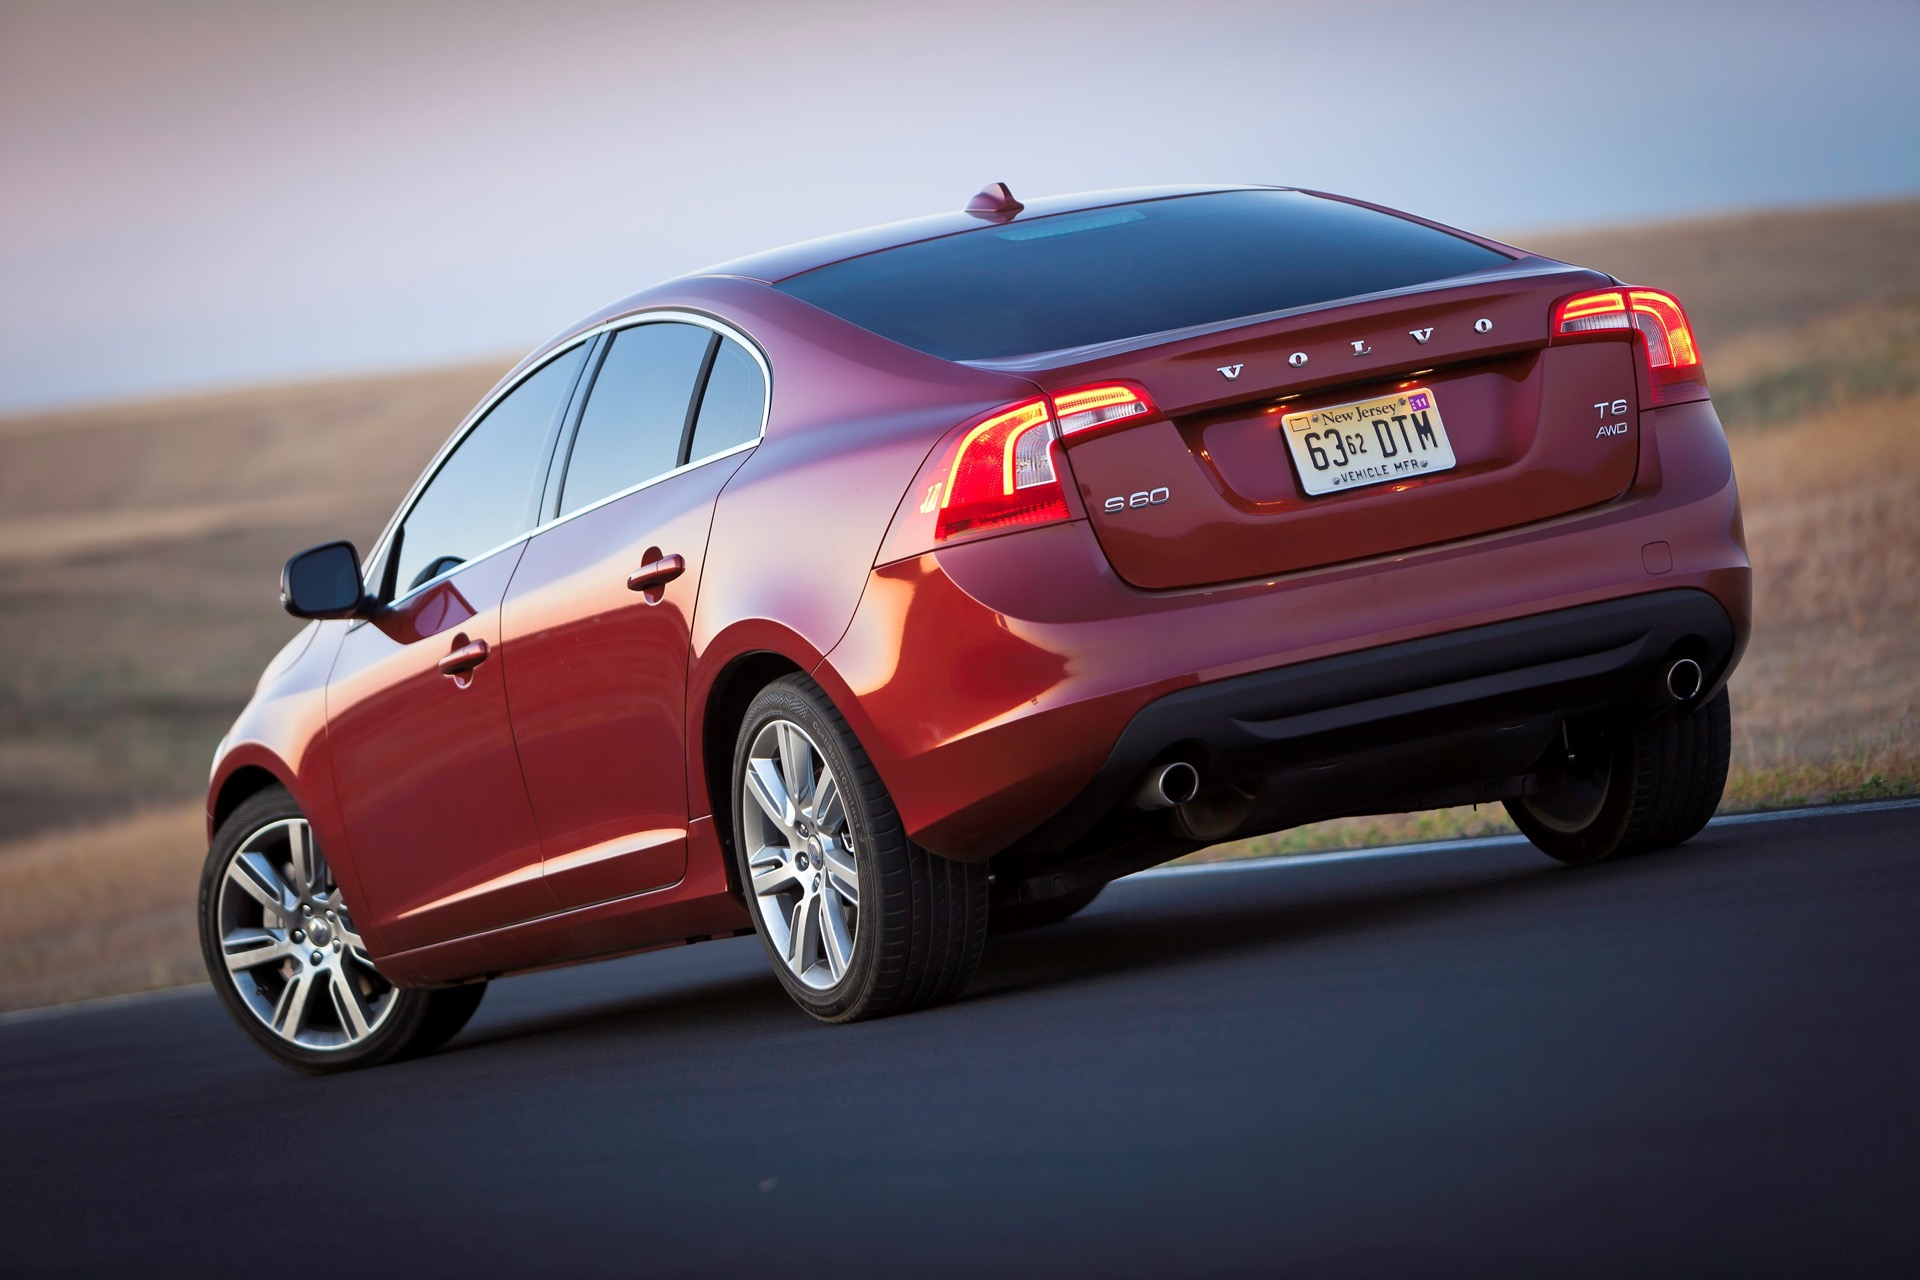 S60 T6 Awd Static Beauty02 -  Volvo